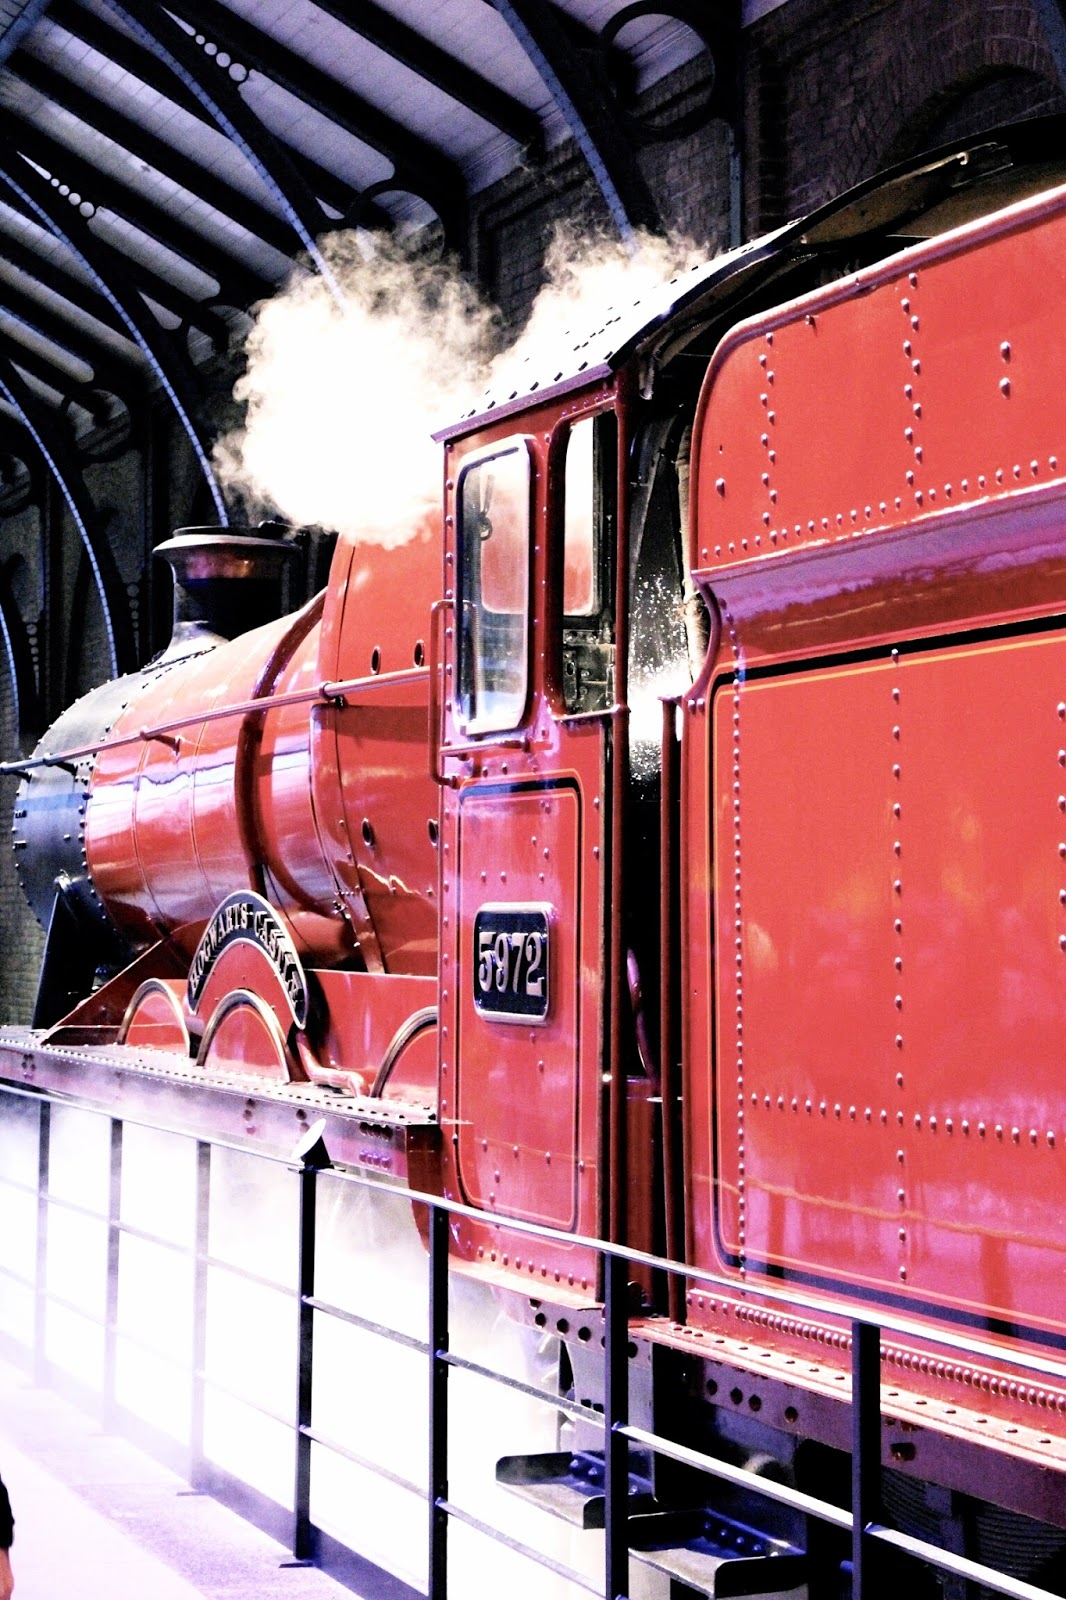 Harry Potter Hogwarts Express at London Studio